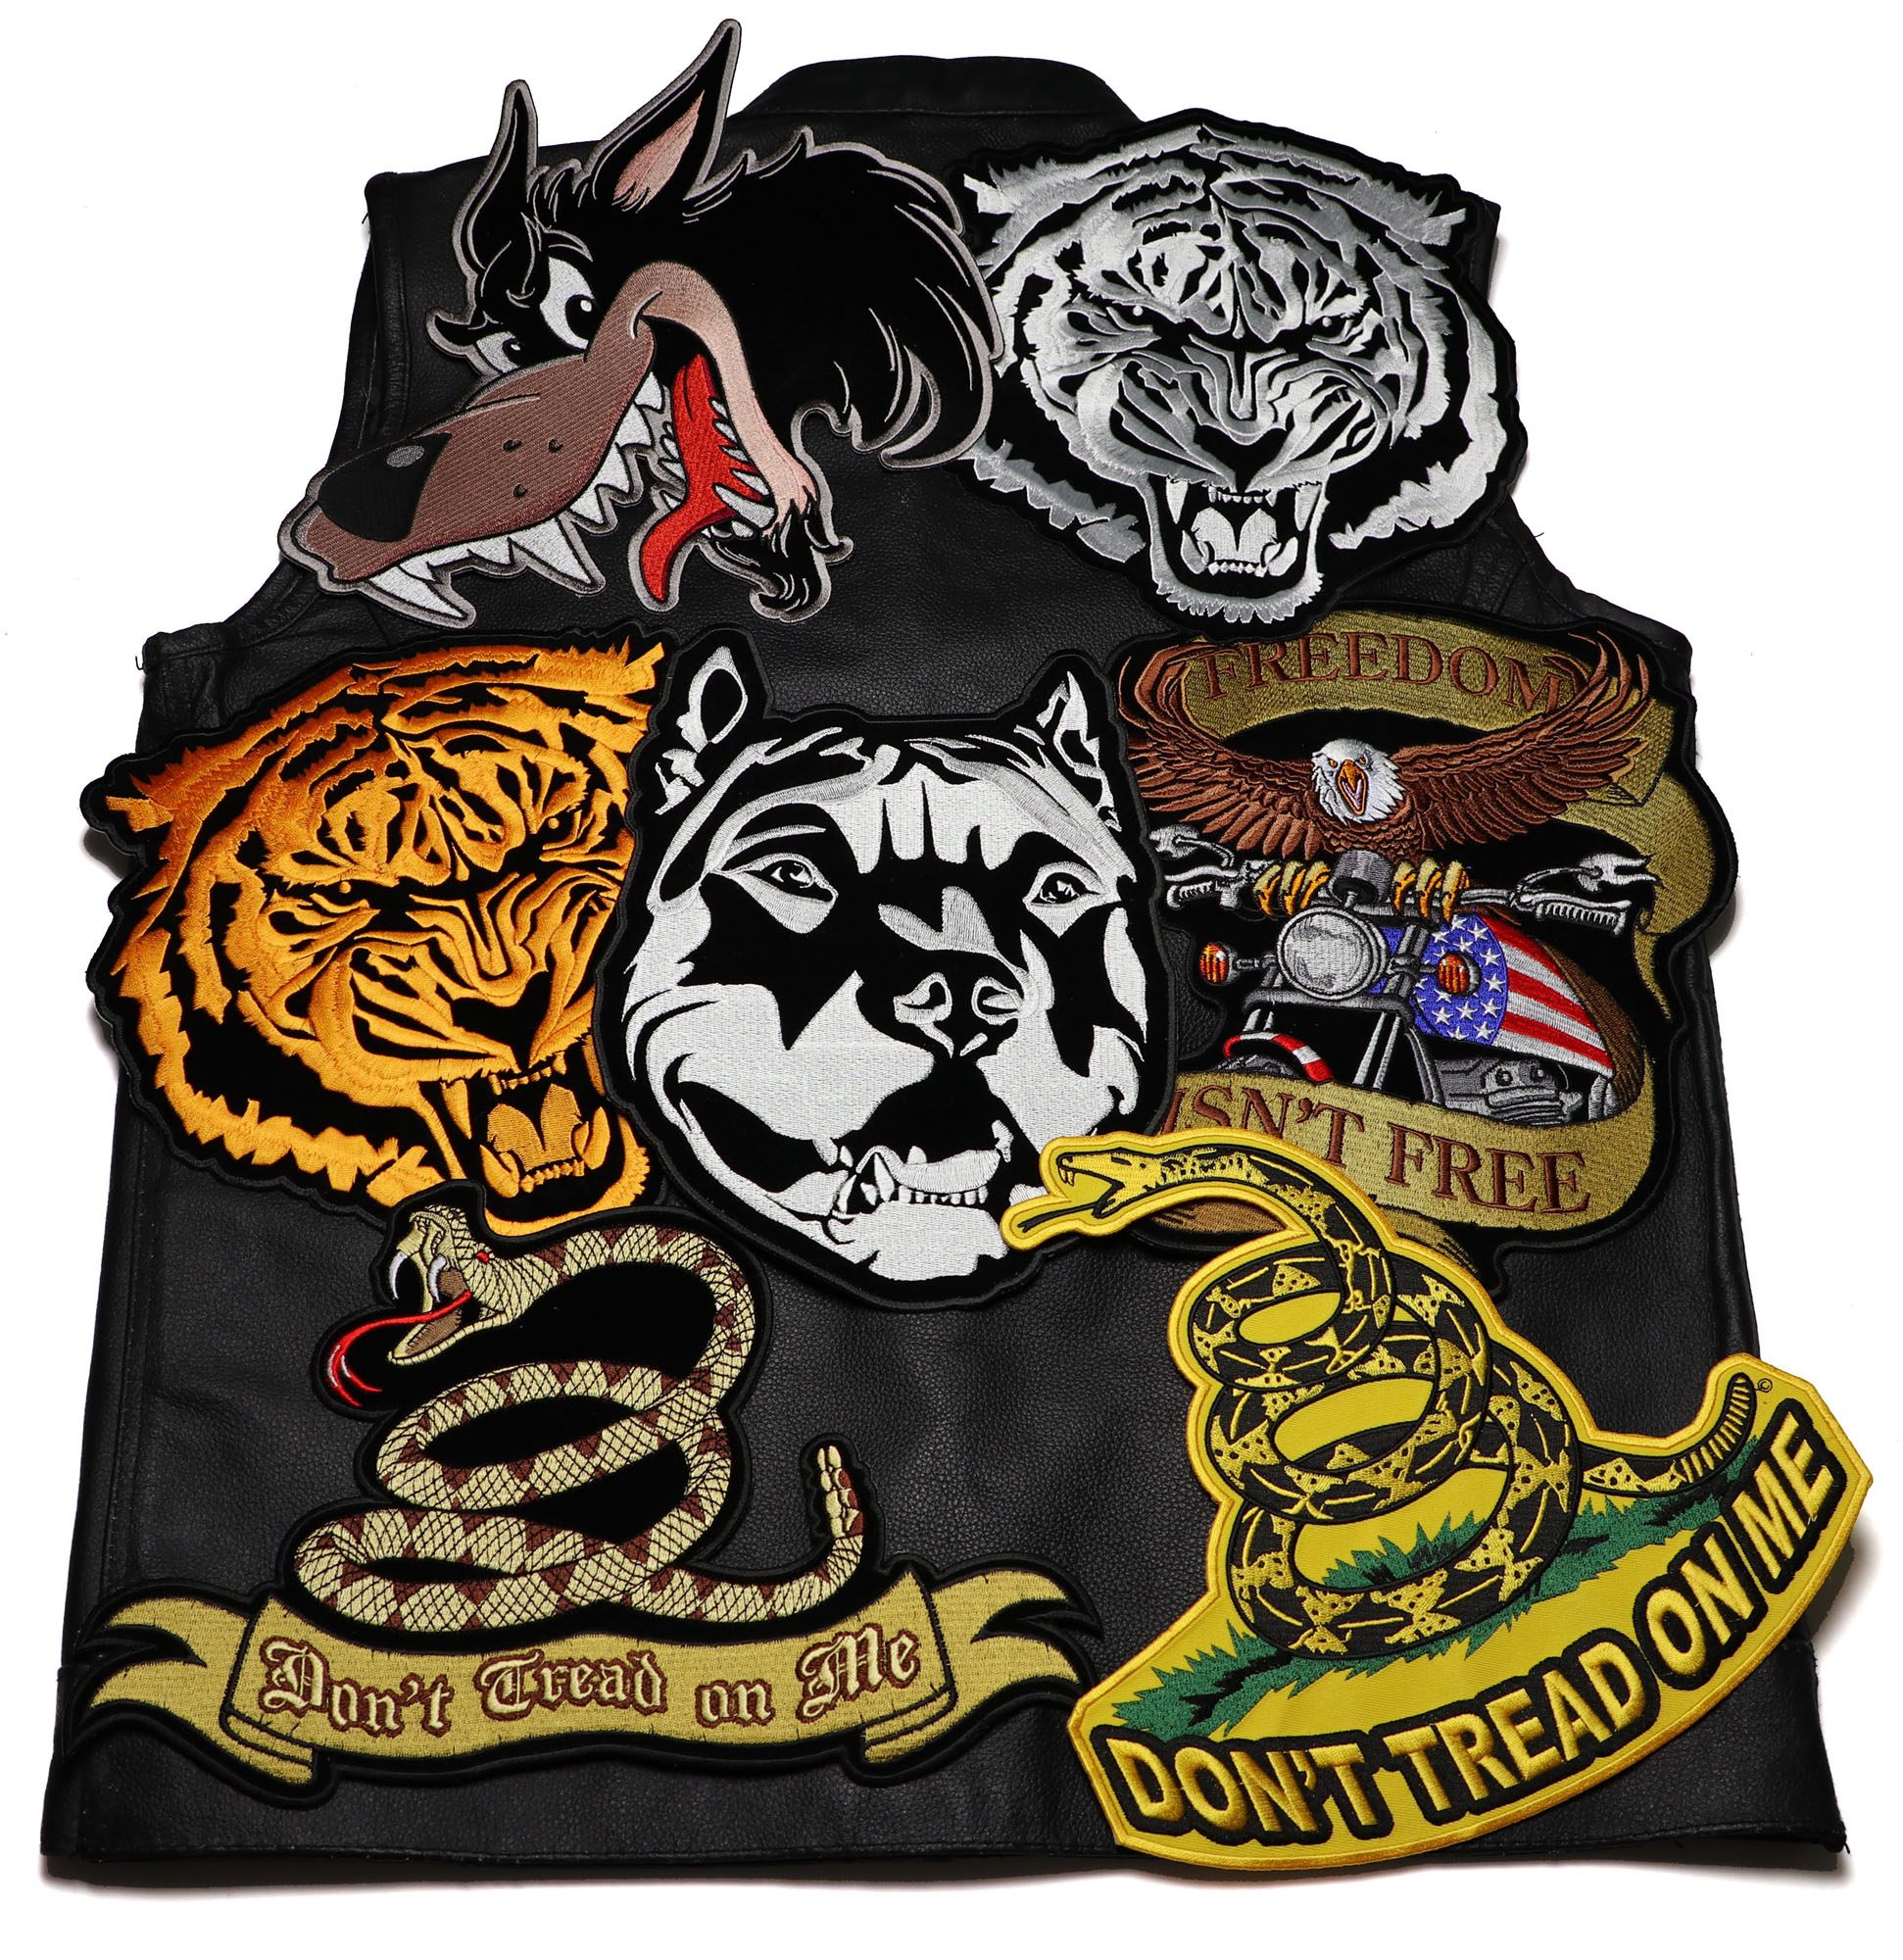 Ride Safe Vest >> Large Patches for the Back of Your Leather Riding Vest